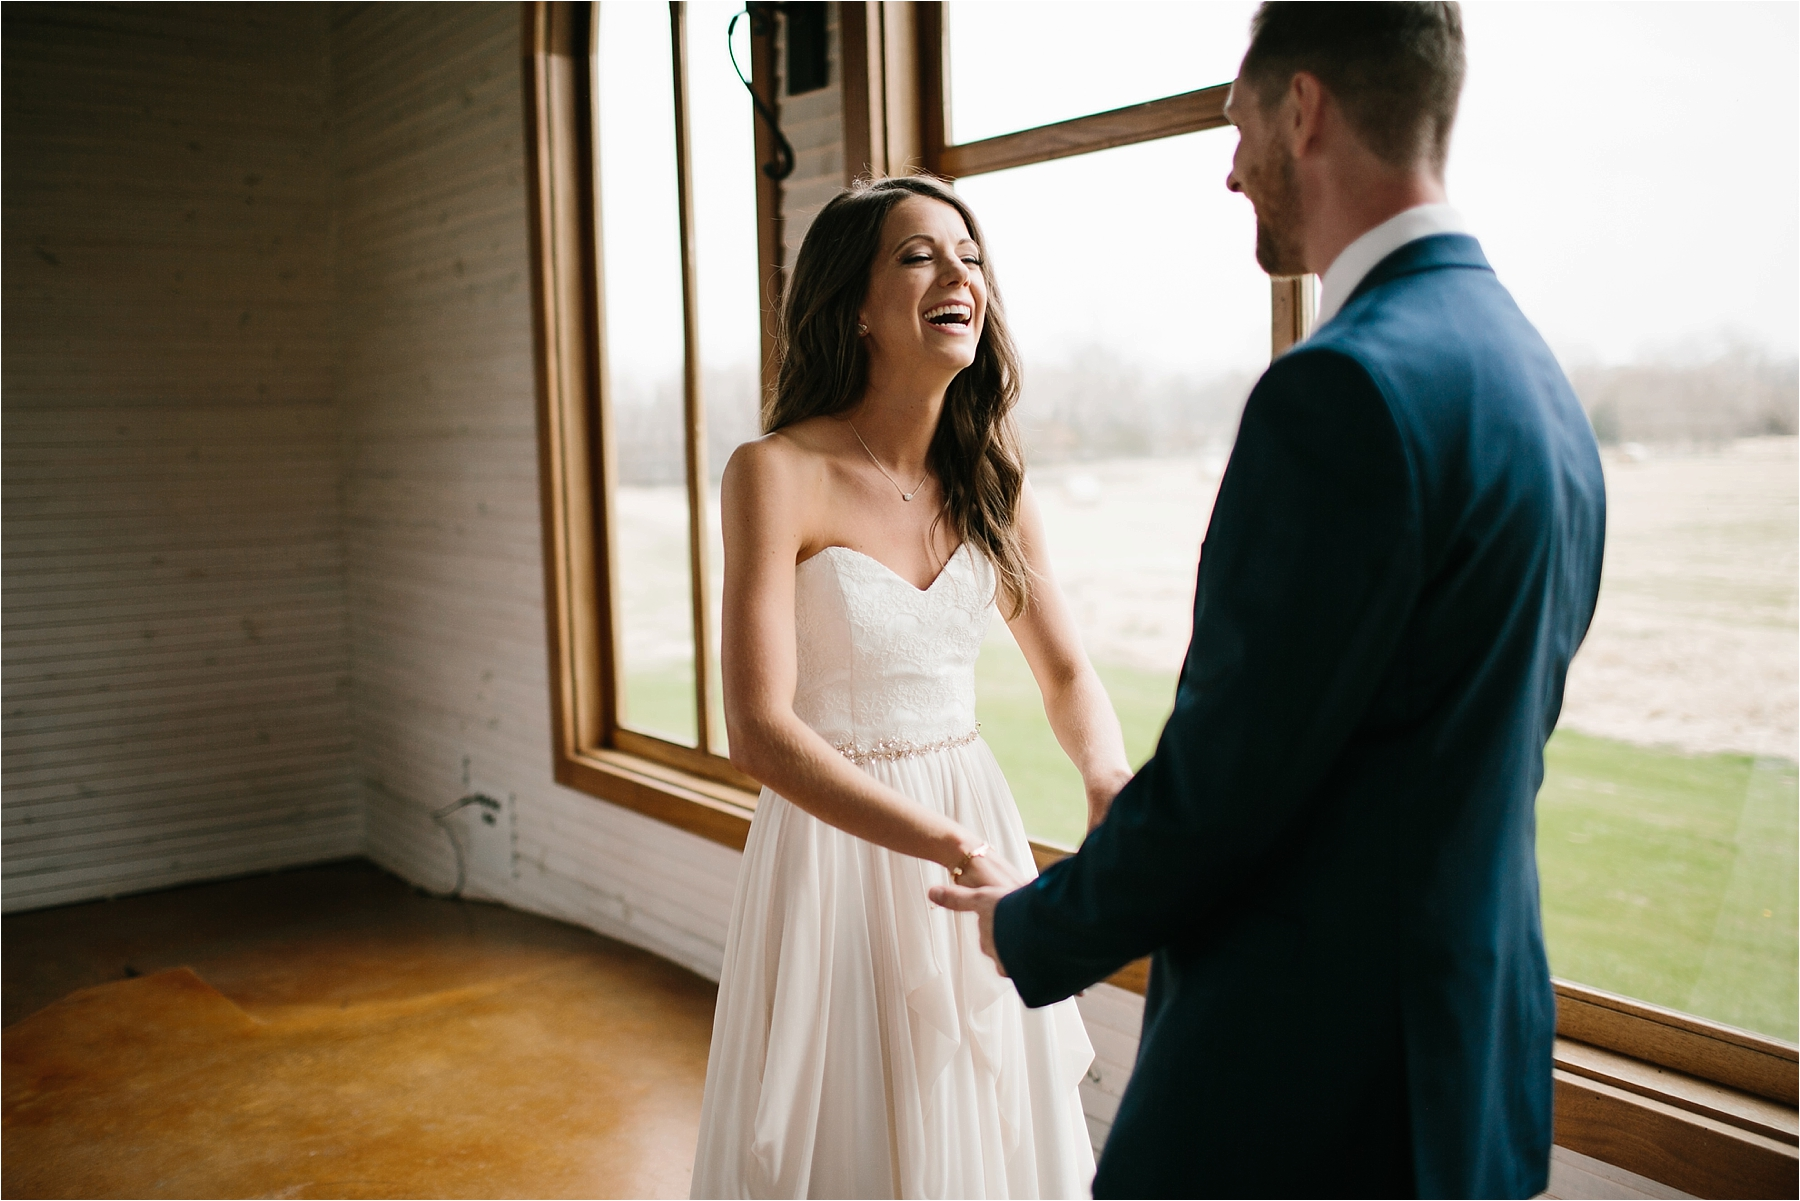 Lauren + Matt __ an intimate, emotional, blush pink, navy blue, and greenery toned wedding accents at the Brooks at Weatherford by North Texas Wedding Photographer Rachel Meagan Photography032